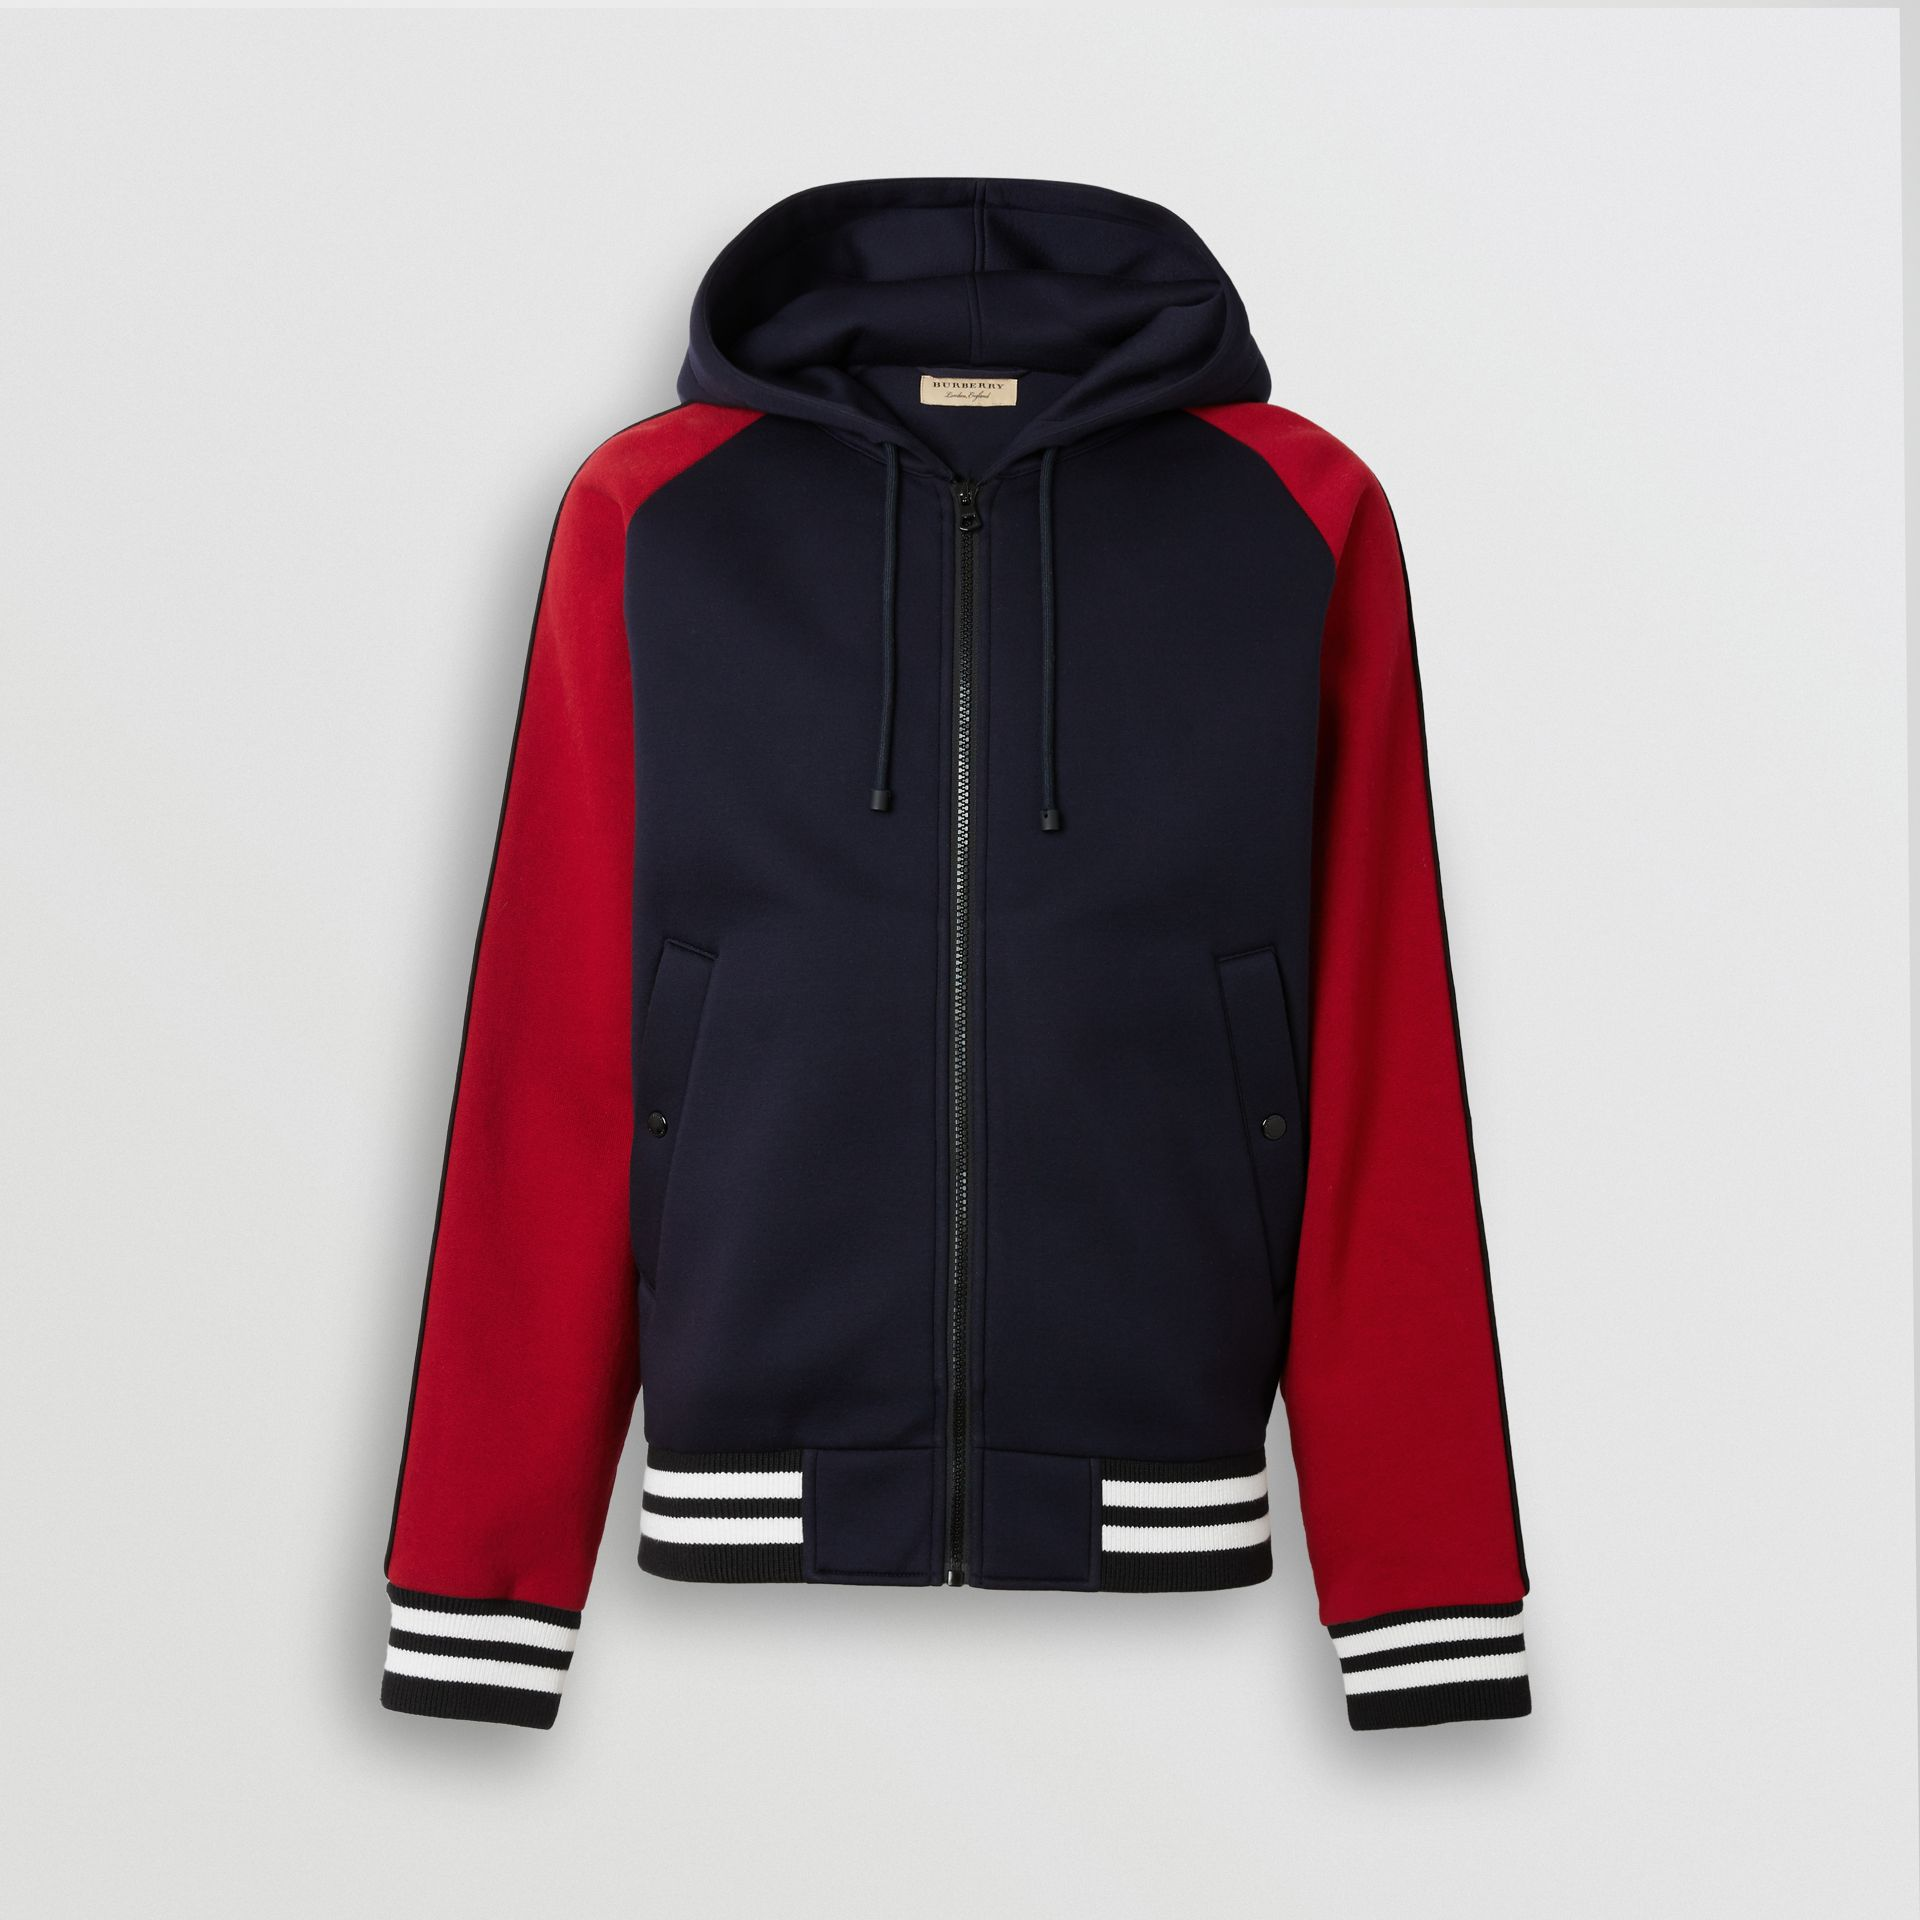 Contrast Crest Neoprene Hooded Top in Navy - Men | Burberry United Kingdom - gallery image 3